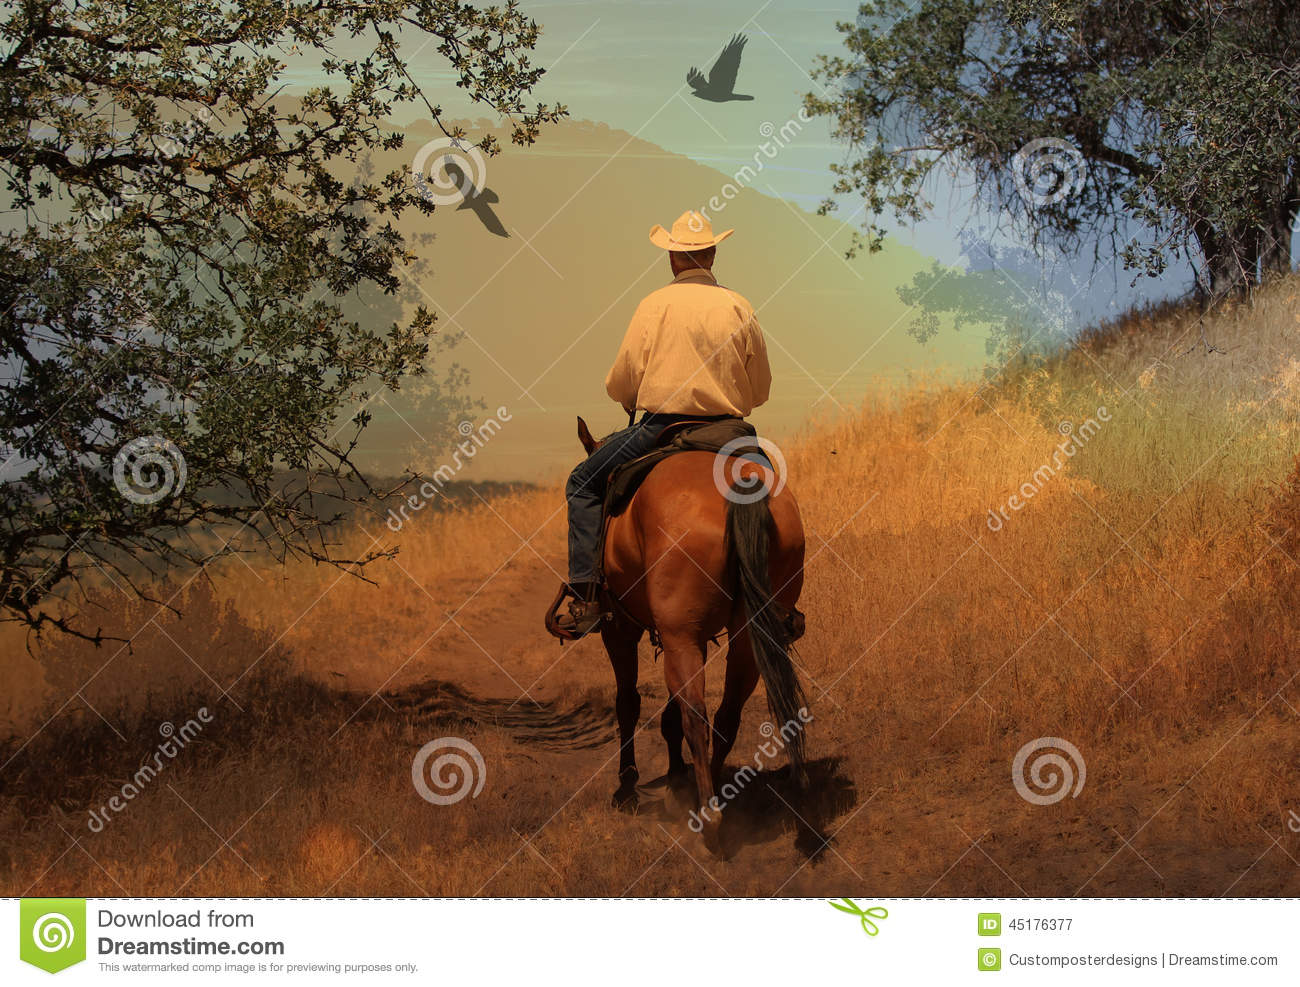 Download A Cowboy Riding His Horse On A Mountain Trail With Oak Trees. Stock Image - Image of cowboy, equestrian: 45176377